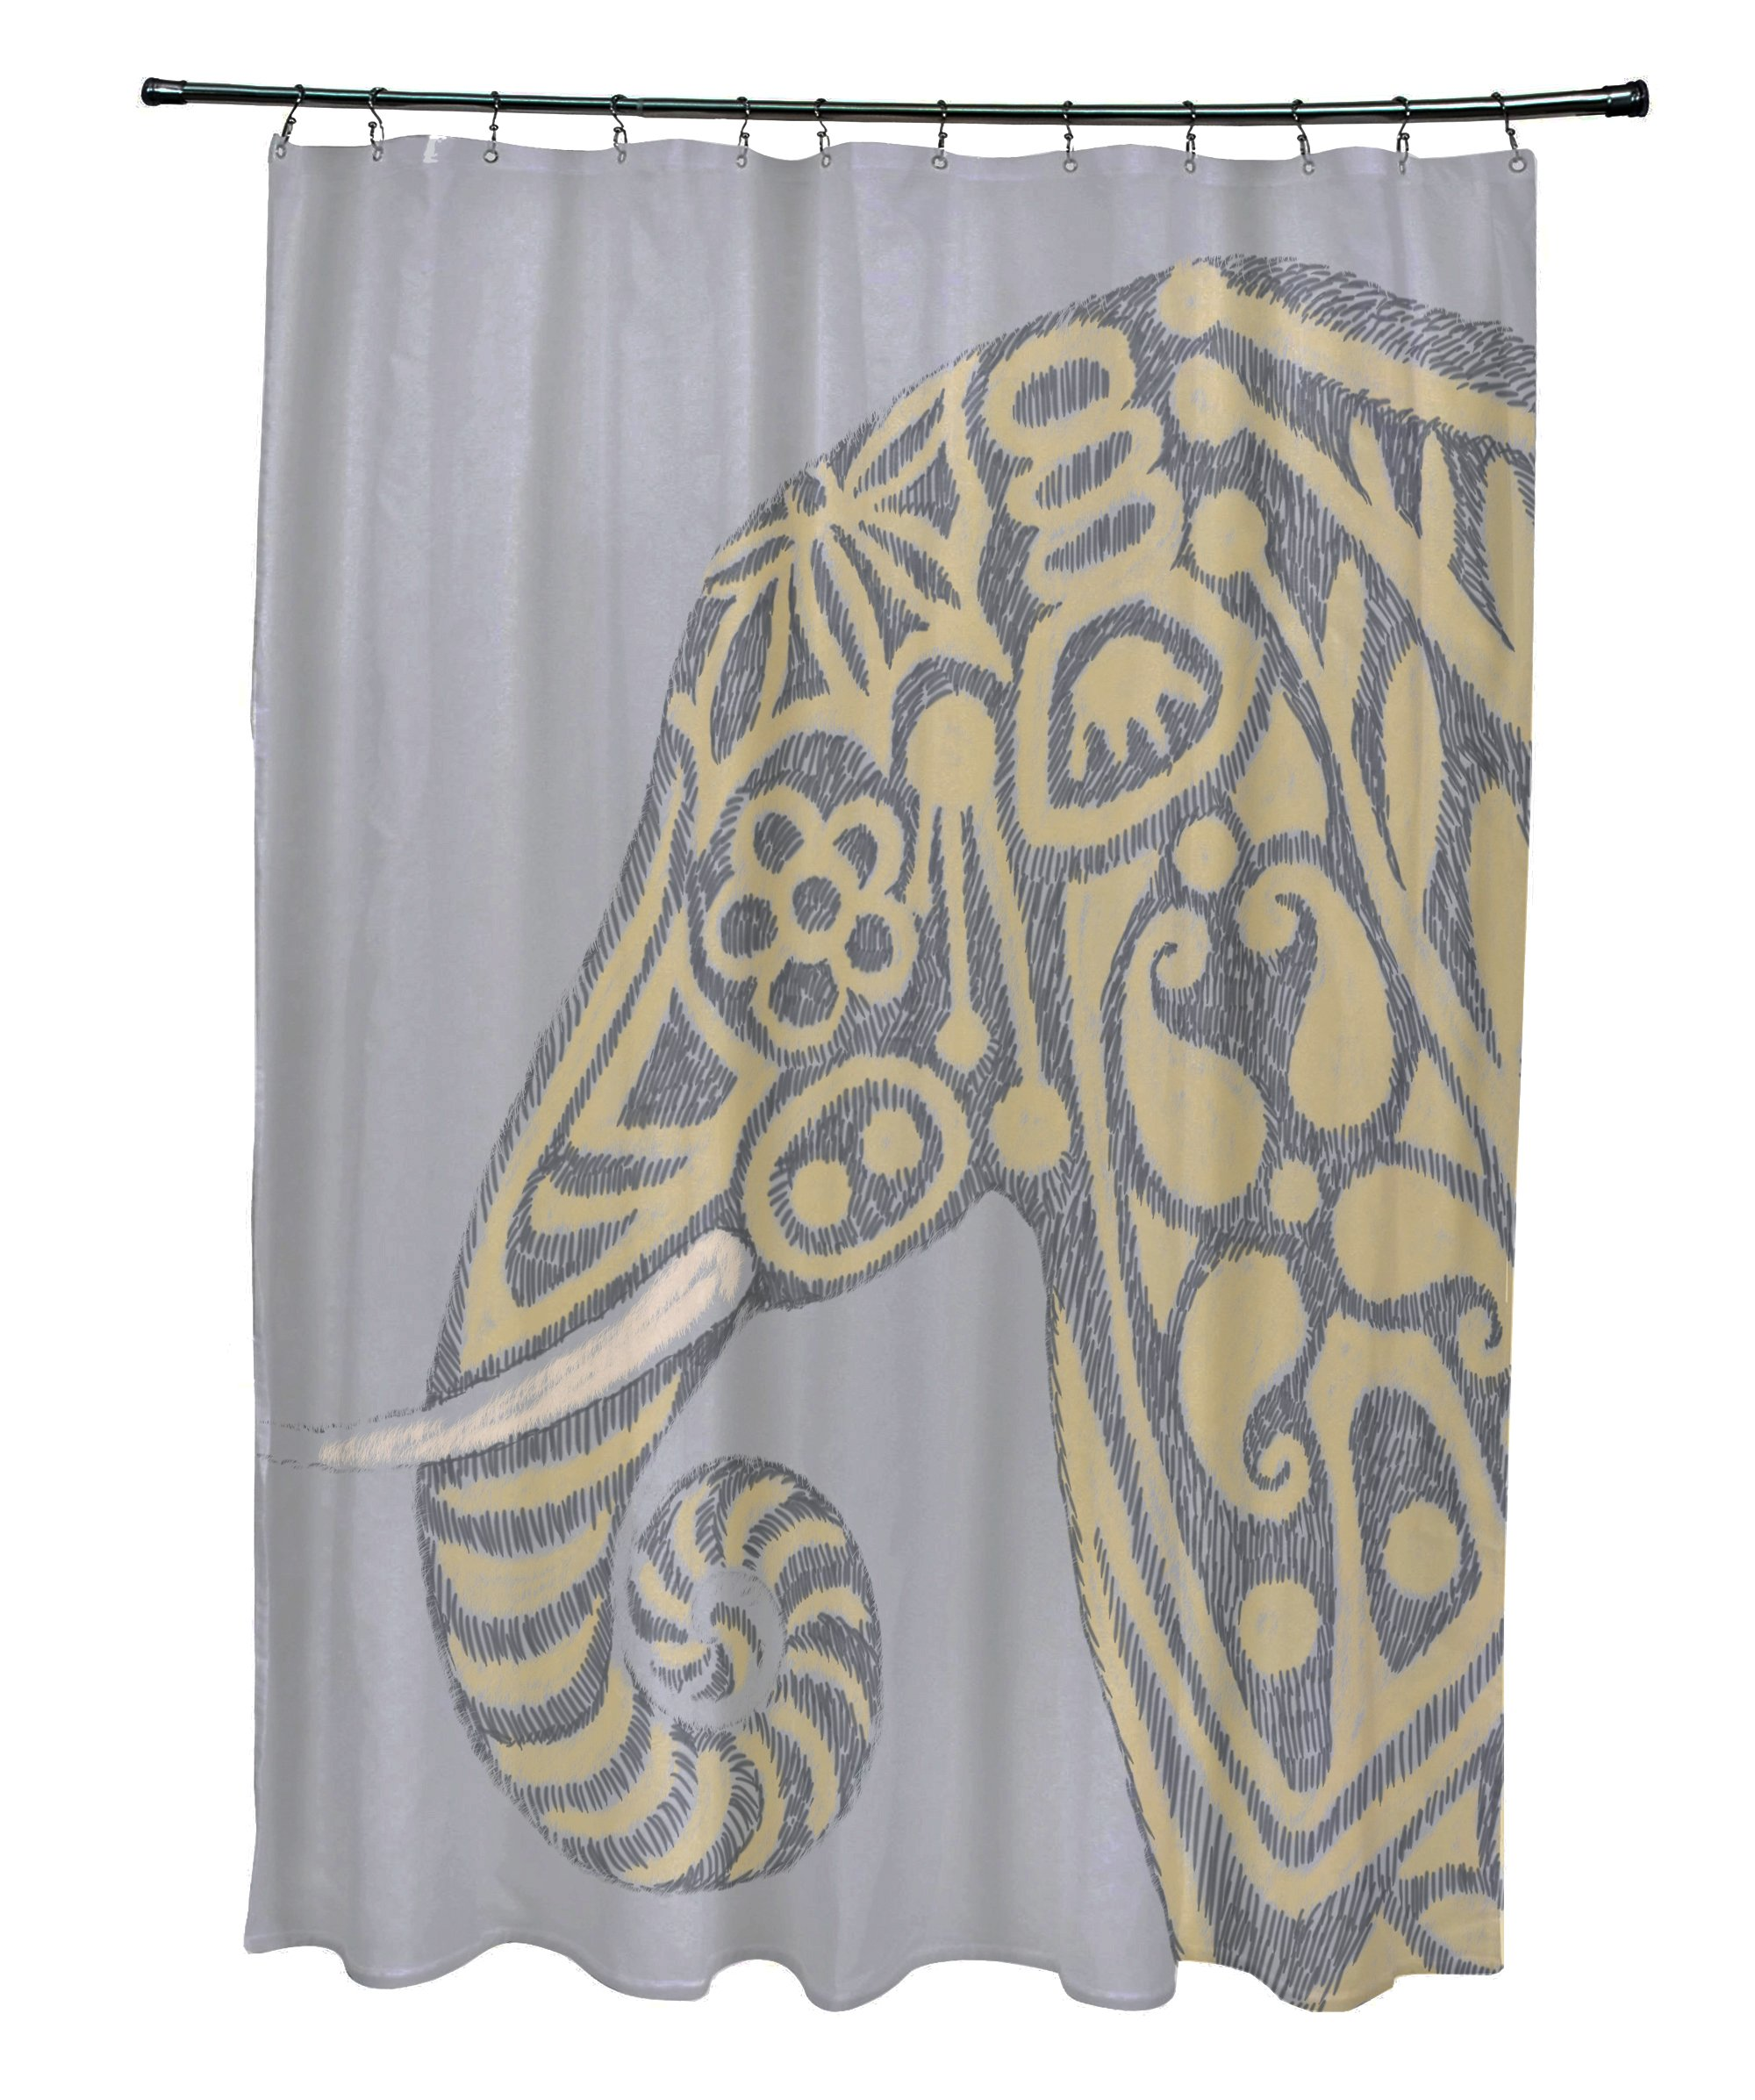 E By Design SCAN378GY3YE4 Inky Animal Print Shower Curtain, 71'' x 74'', Gray